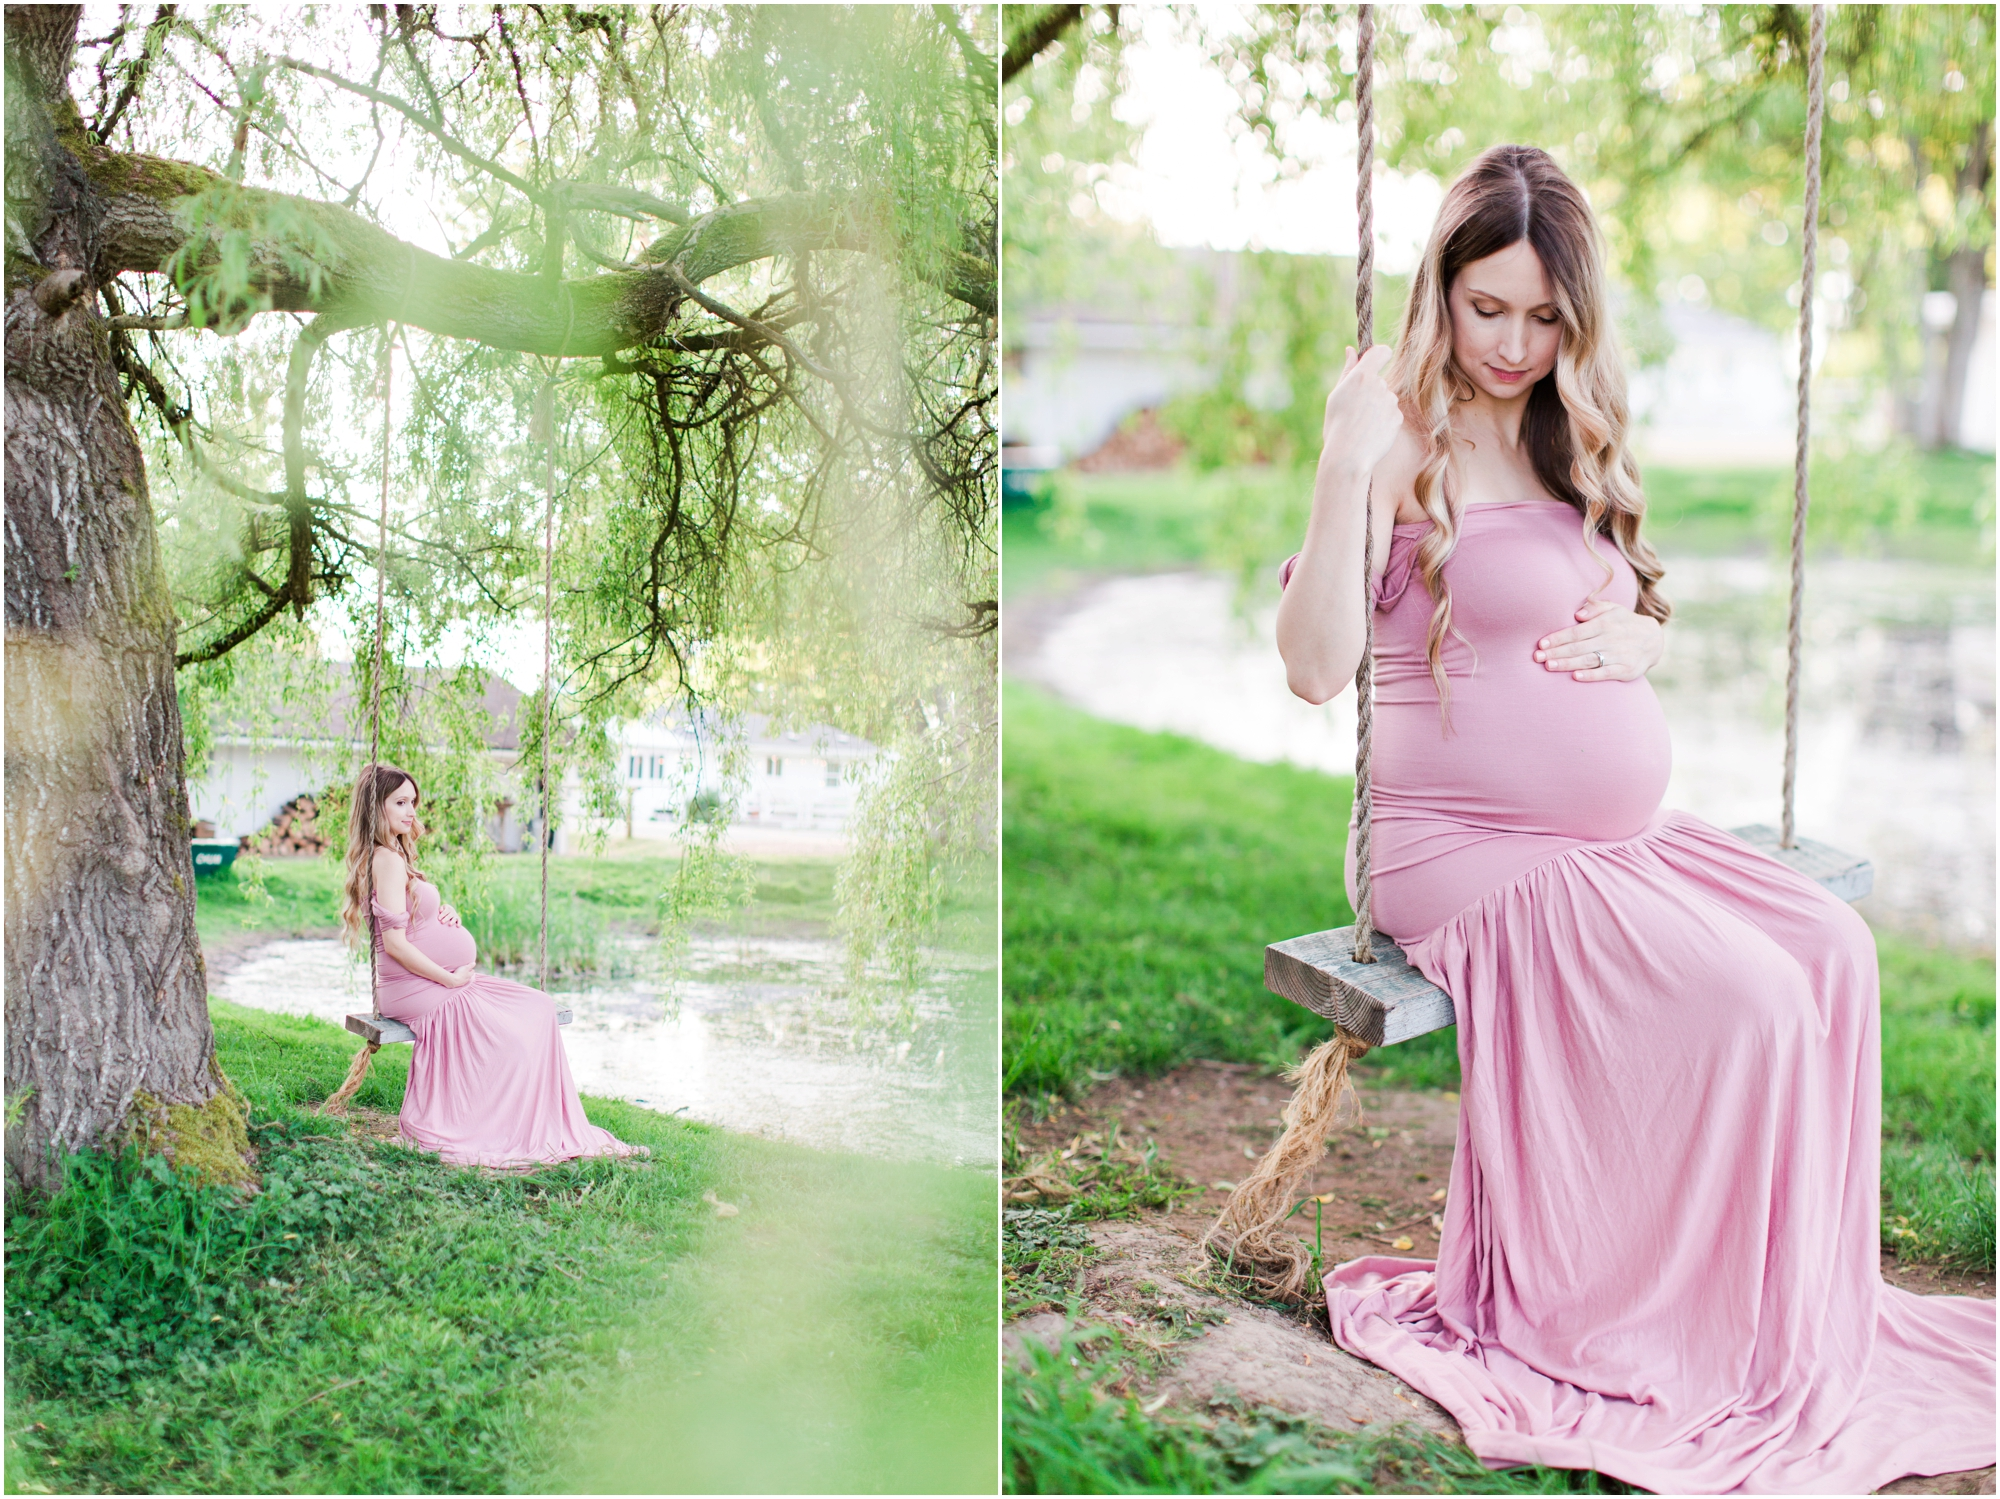 Wild Hearts Farm maternity shoot in Tacoma. Photos by Briana Calderon Photography based in the greater Seattle Tacoma Area._1190.jpg